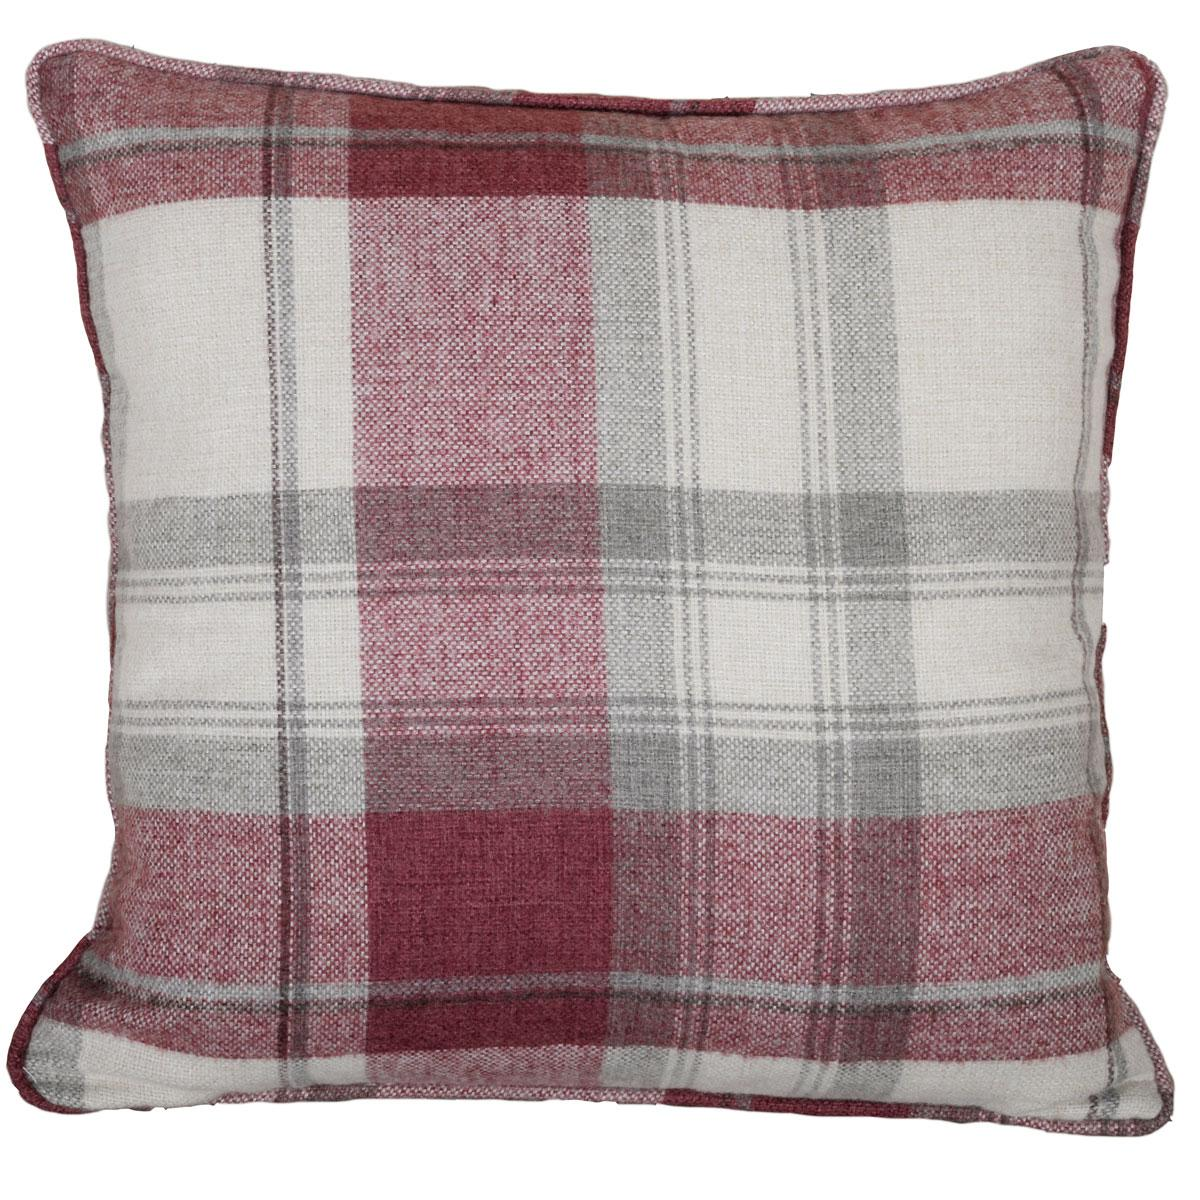 Stockists of Red Belvedere Square Cushion Filled